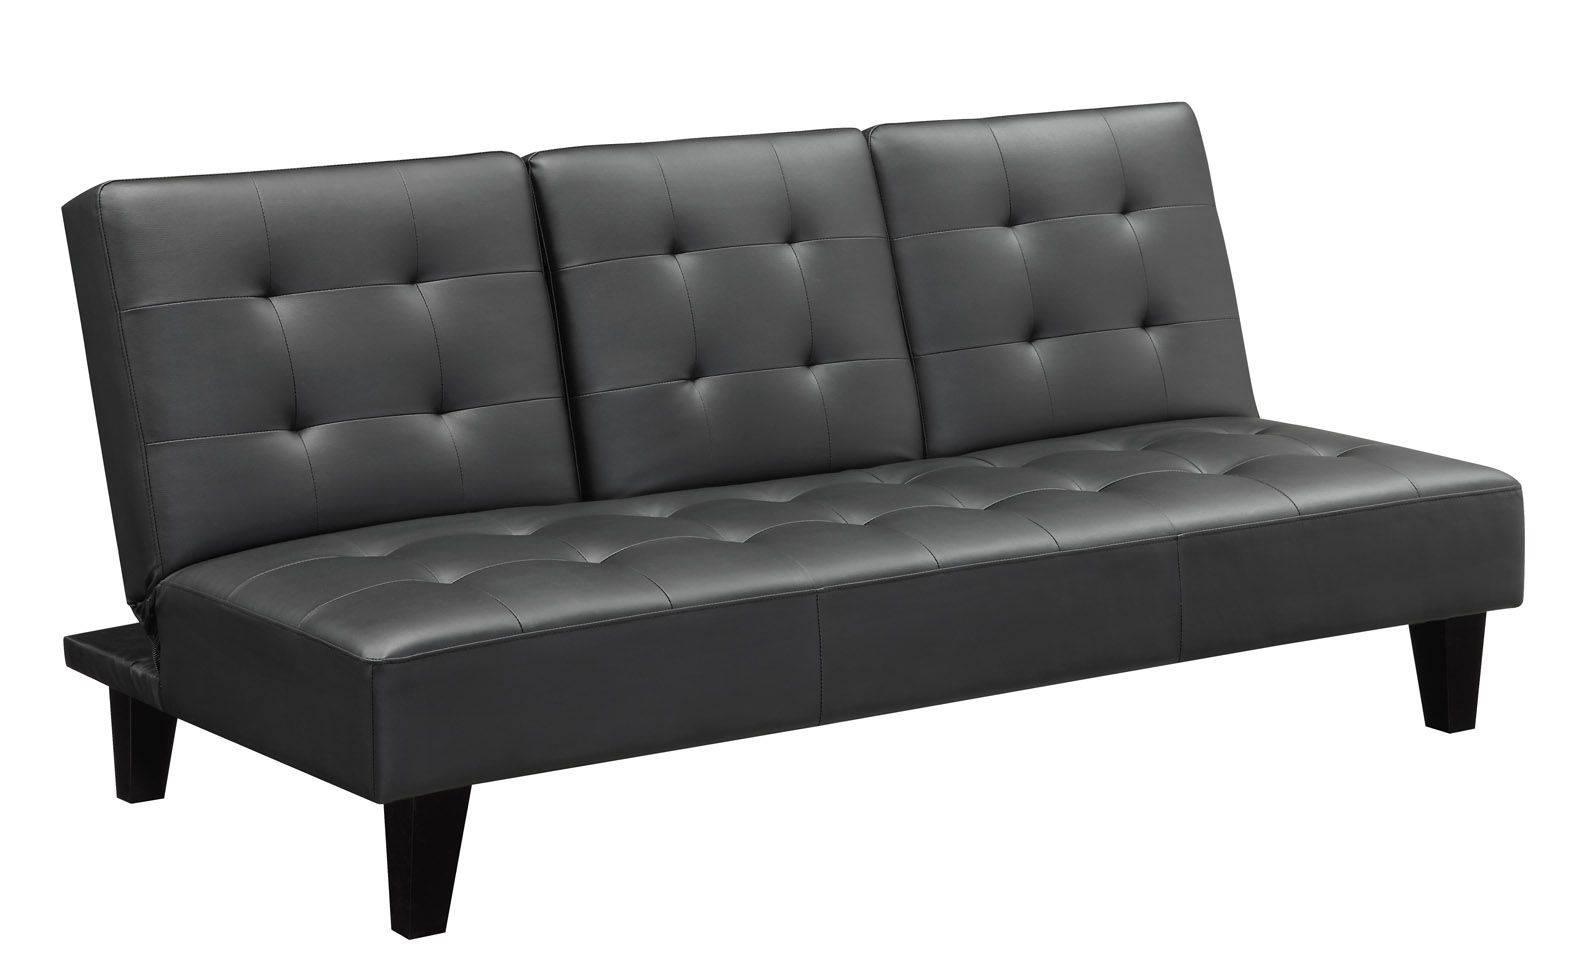 Sofa: Love Seat Sleepers | Sears Sofa Bed | Sears Sleeper Sofas intended for Sears Sleeper Sofas (Image 8 of 15)